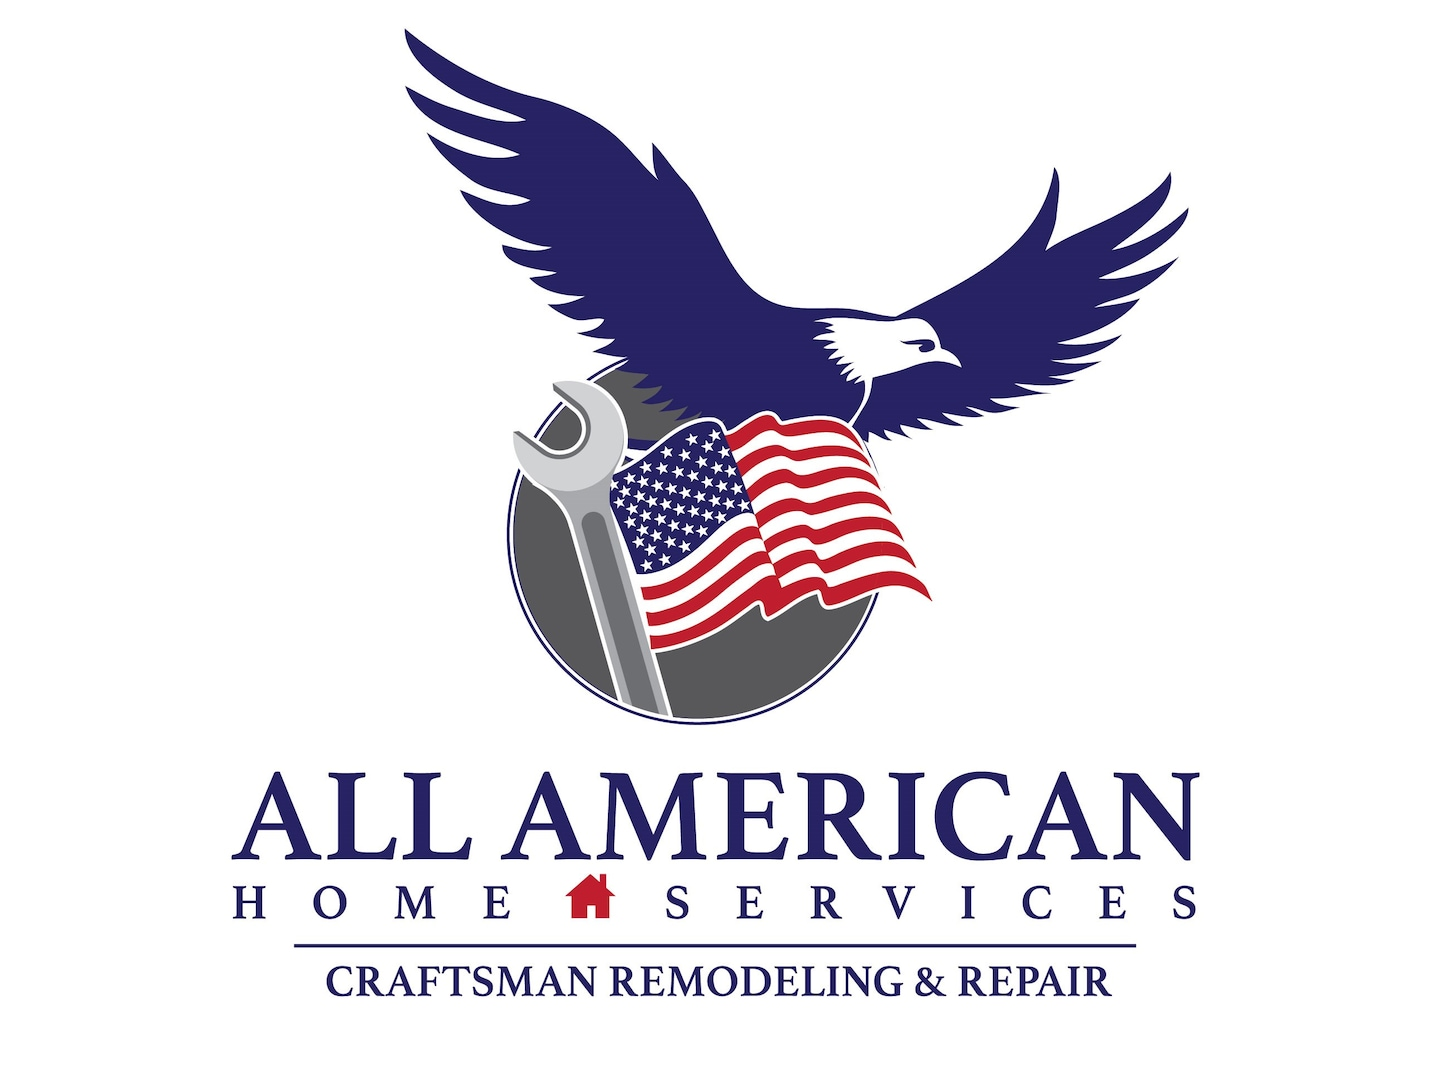 All American Home Services